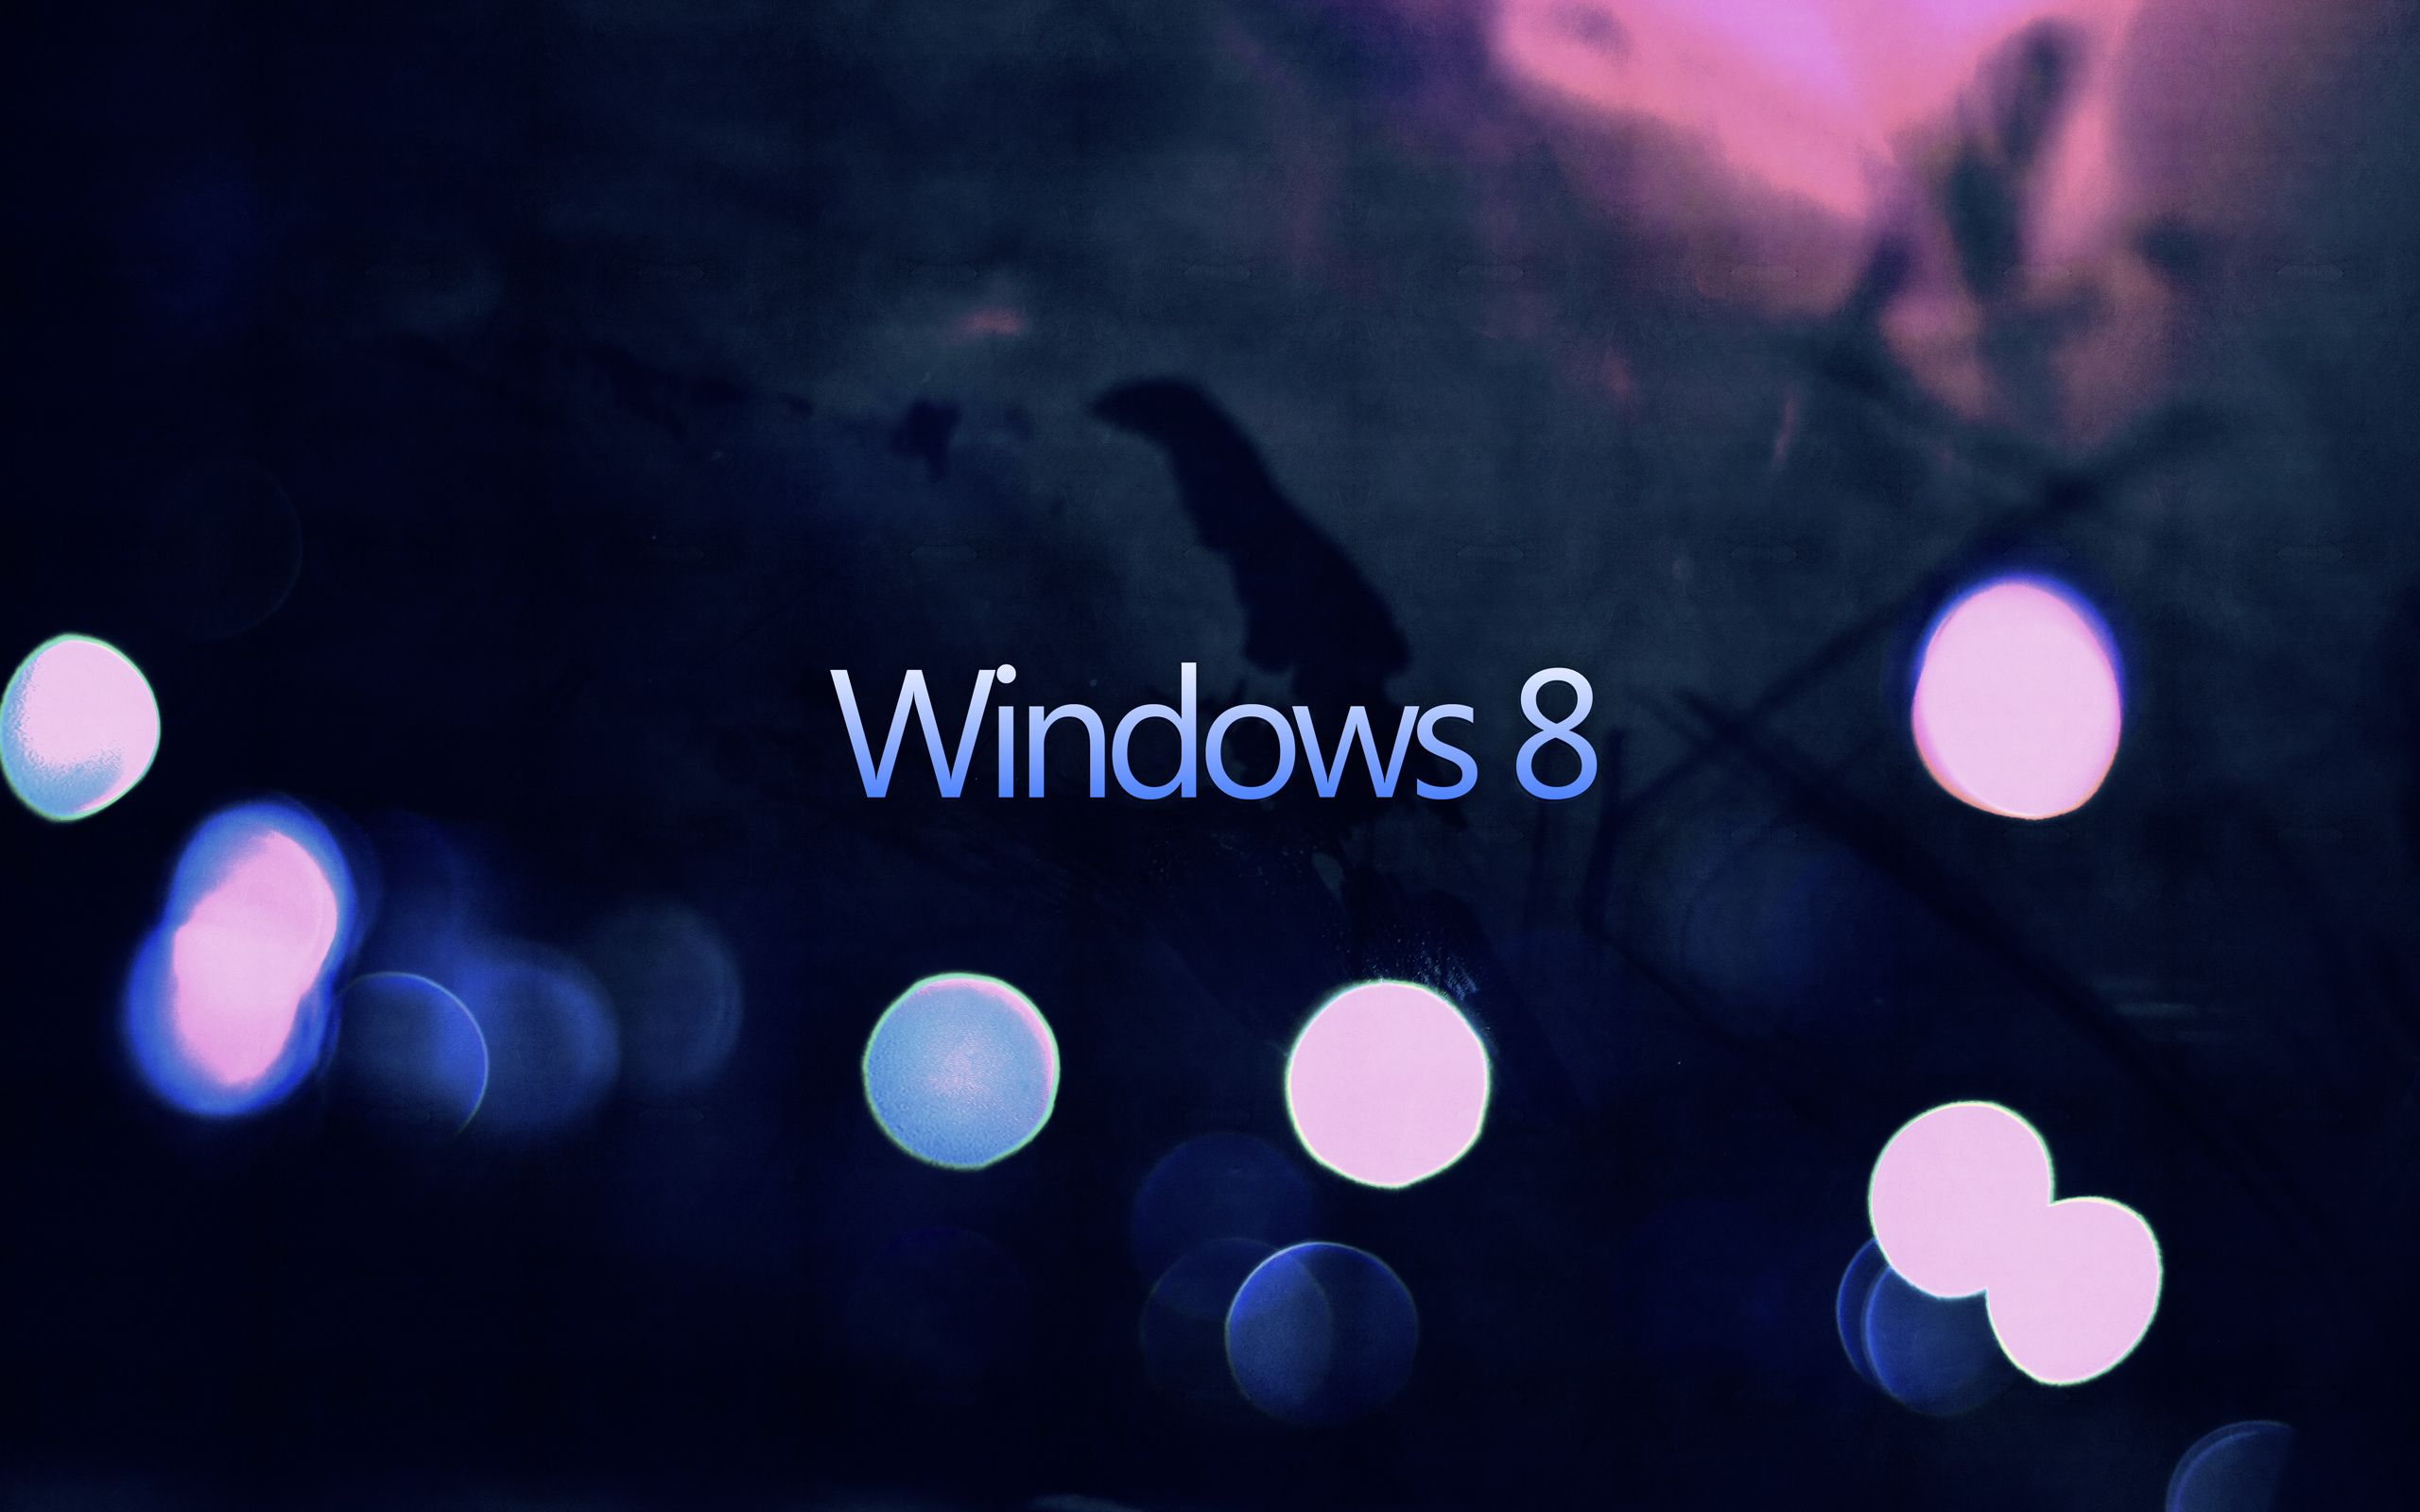 Dark Windows 8 Wide Is An Hd Wallpaper Posted In Logos Category